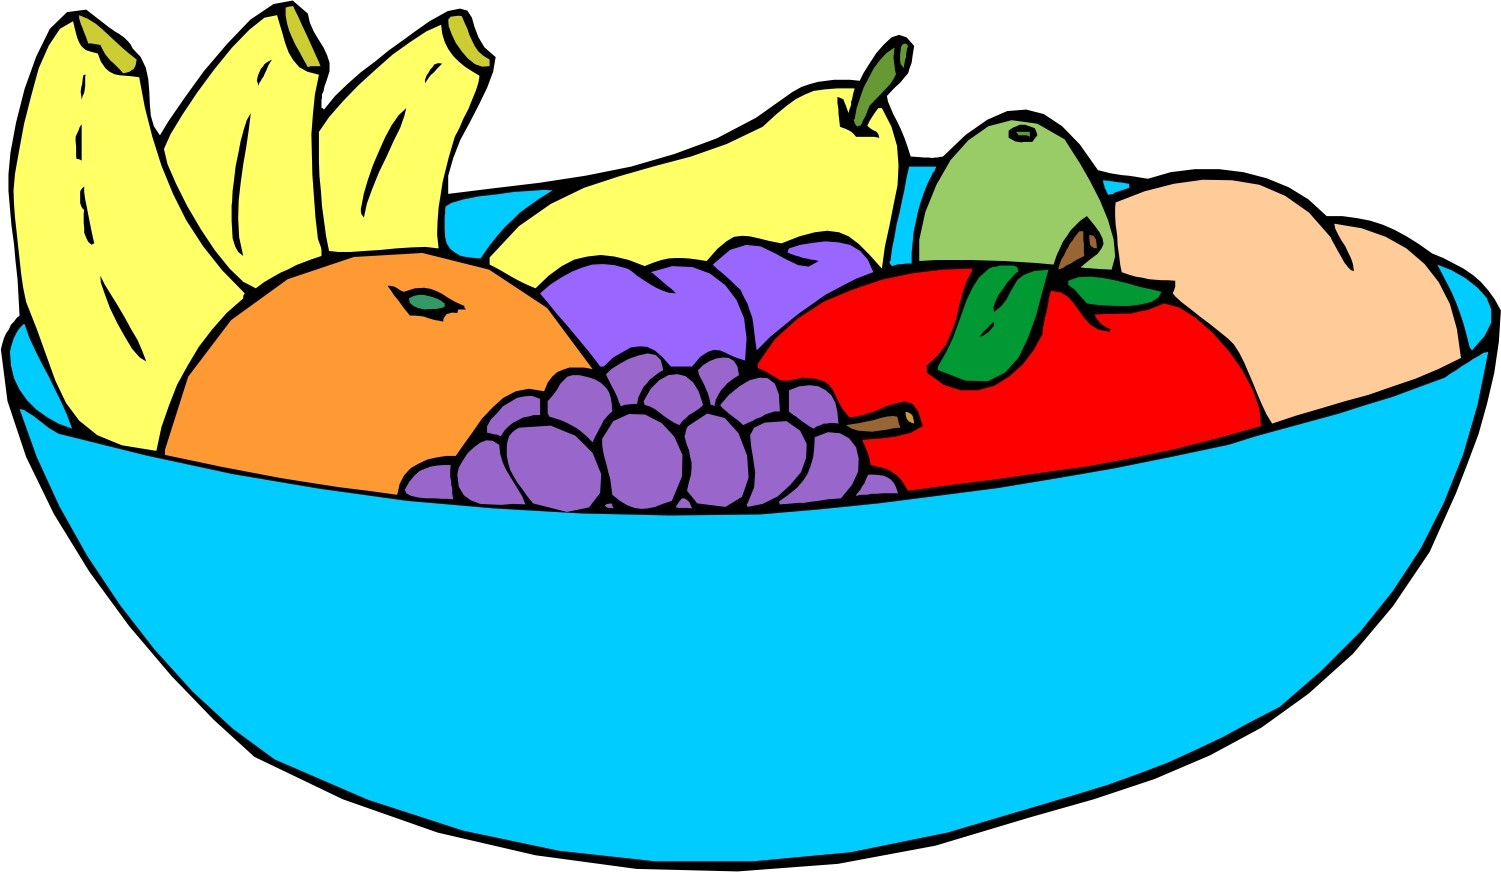 1501x872 Bowl Of Fruit Clipart Plate 1 Clip Art Net Lively